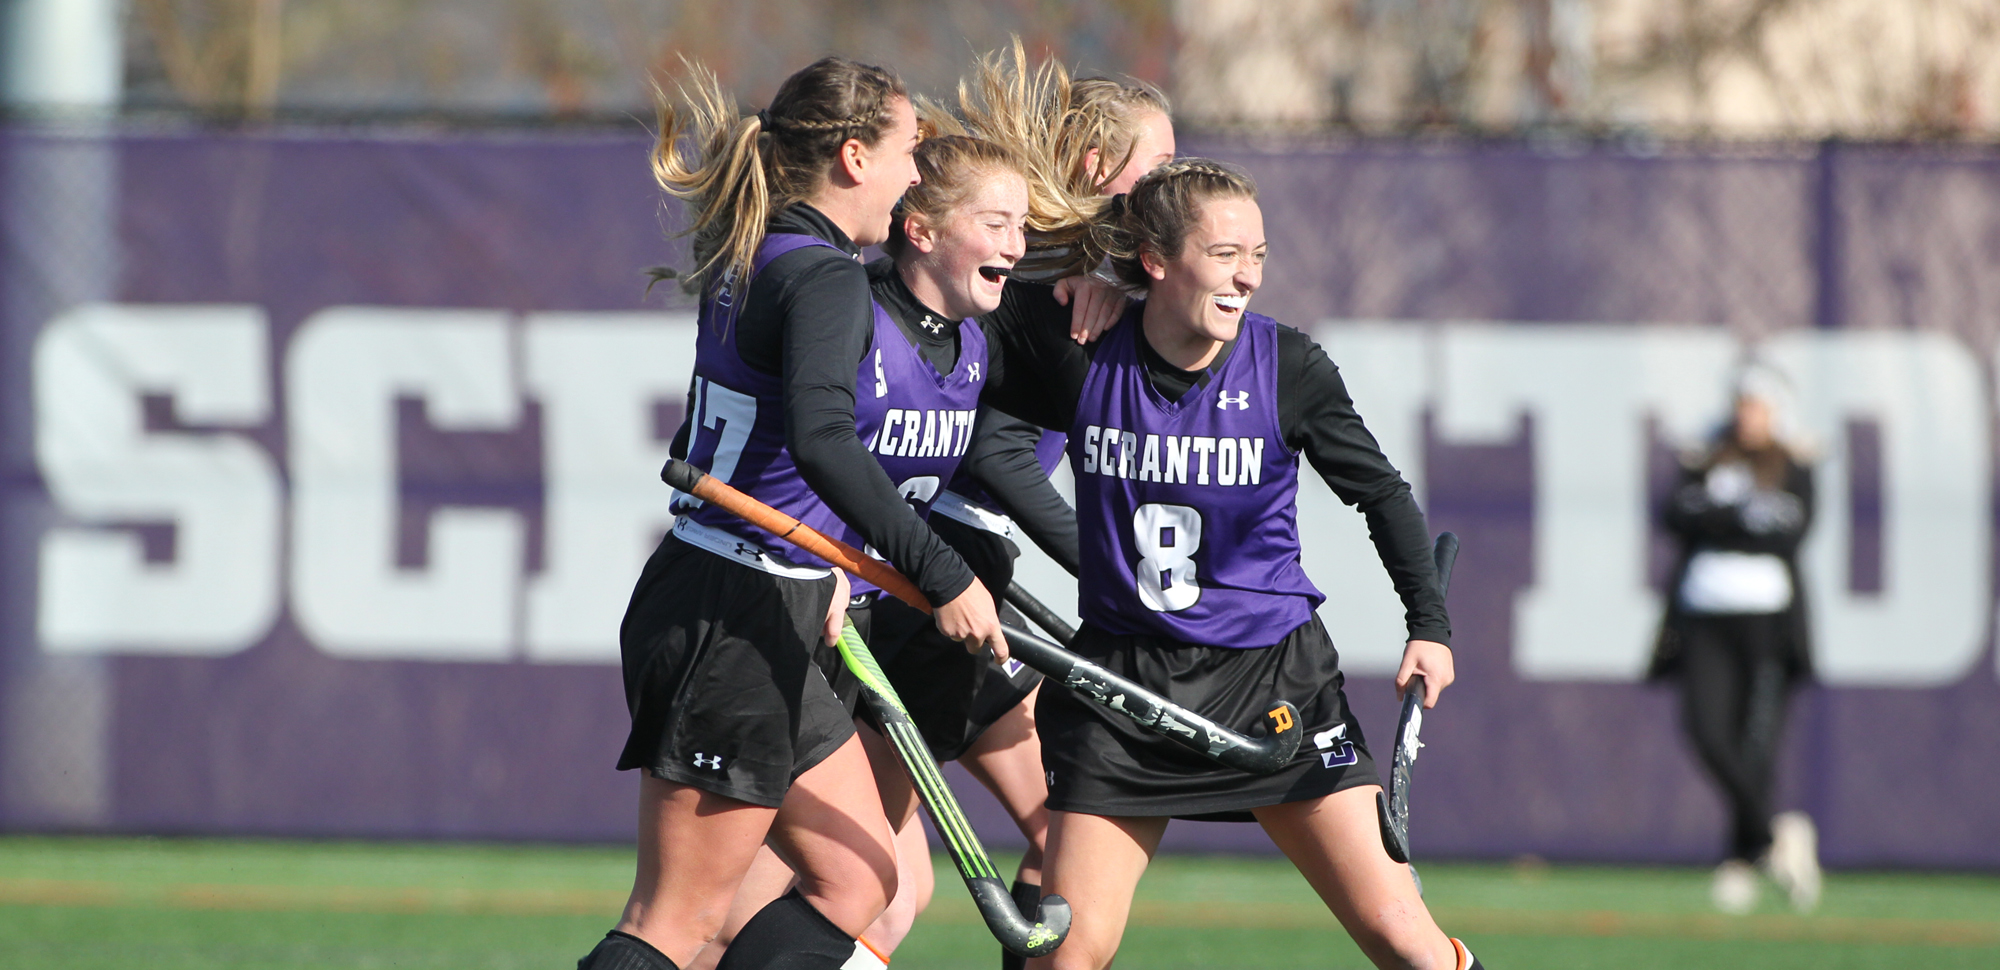 The University of Scranton field hockey team placed 15 student-athletes on the Zag Field Hockey/NFHCA National Academic Squad that was released on Wednesday. © Photo by Timothy R. Dougherty / doubleeaglephotography.com